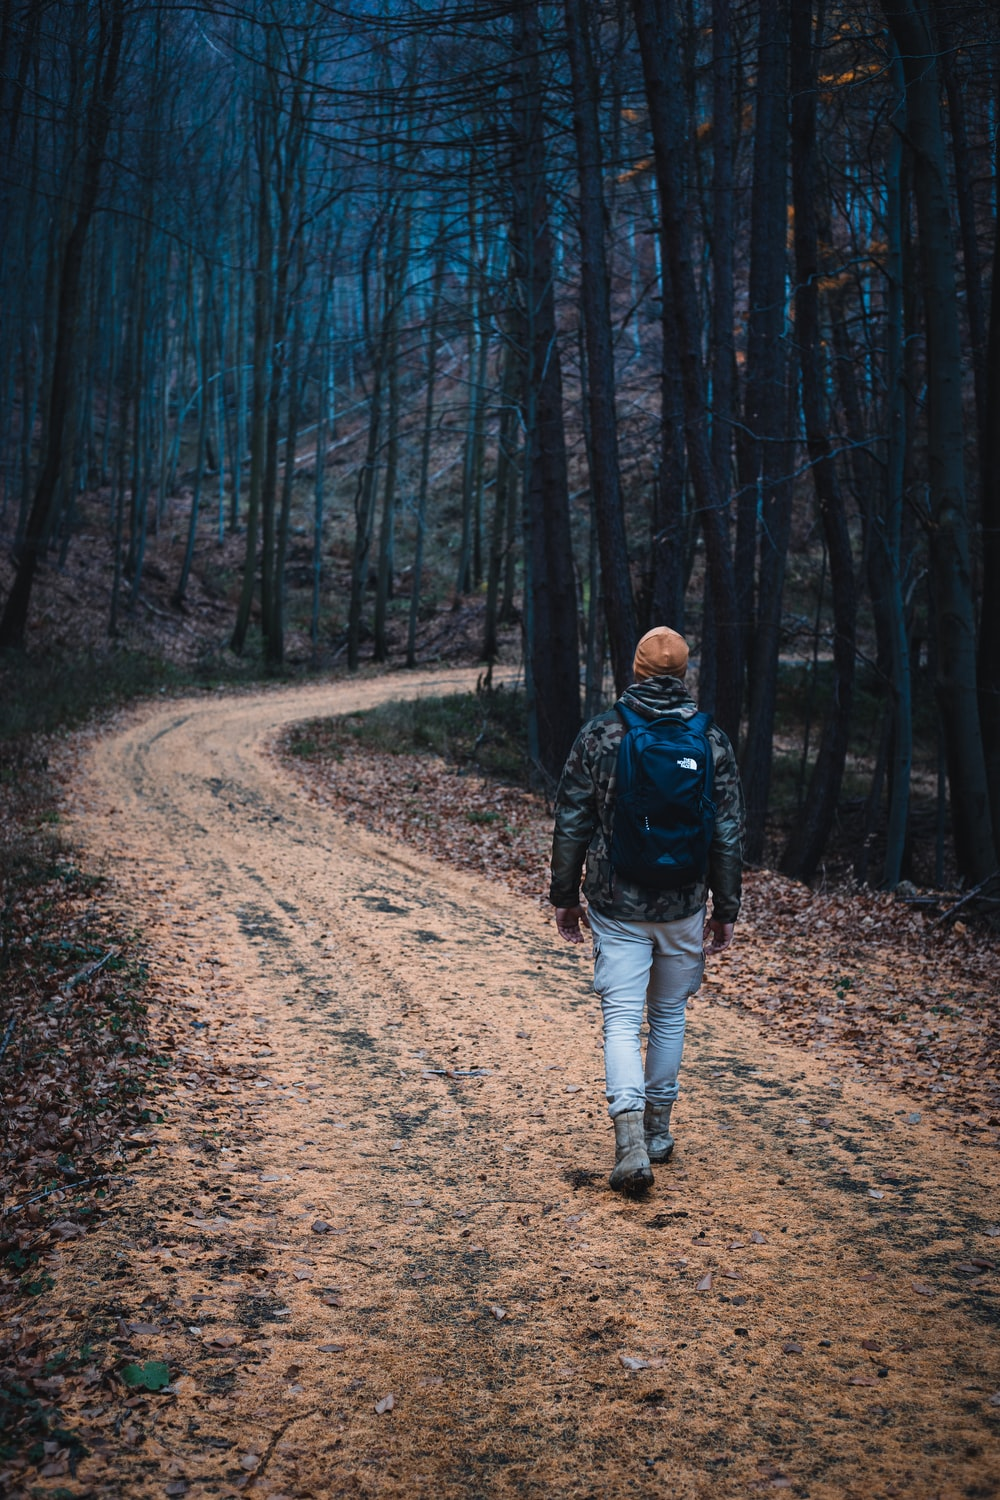 man in black jacket walking on dirt road in the woods during daytime